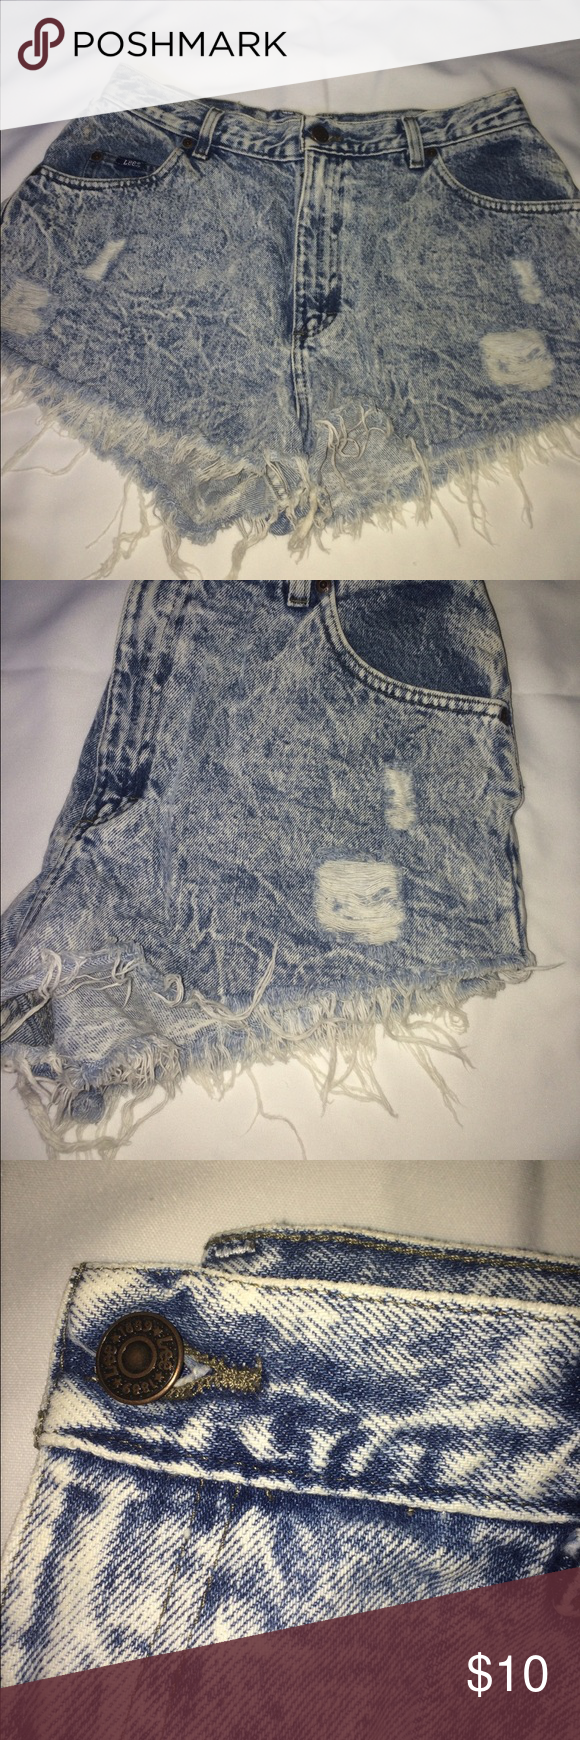 Lee recycled urban outfitter high waisted shorts Recycled | distressed | worn once great condition | no damages | bundle! For flat rate shipping Urban Outfitters Shorts Jean Shorts